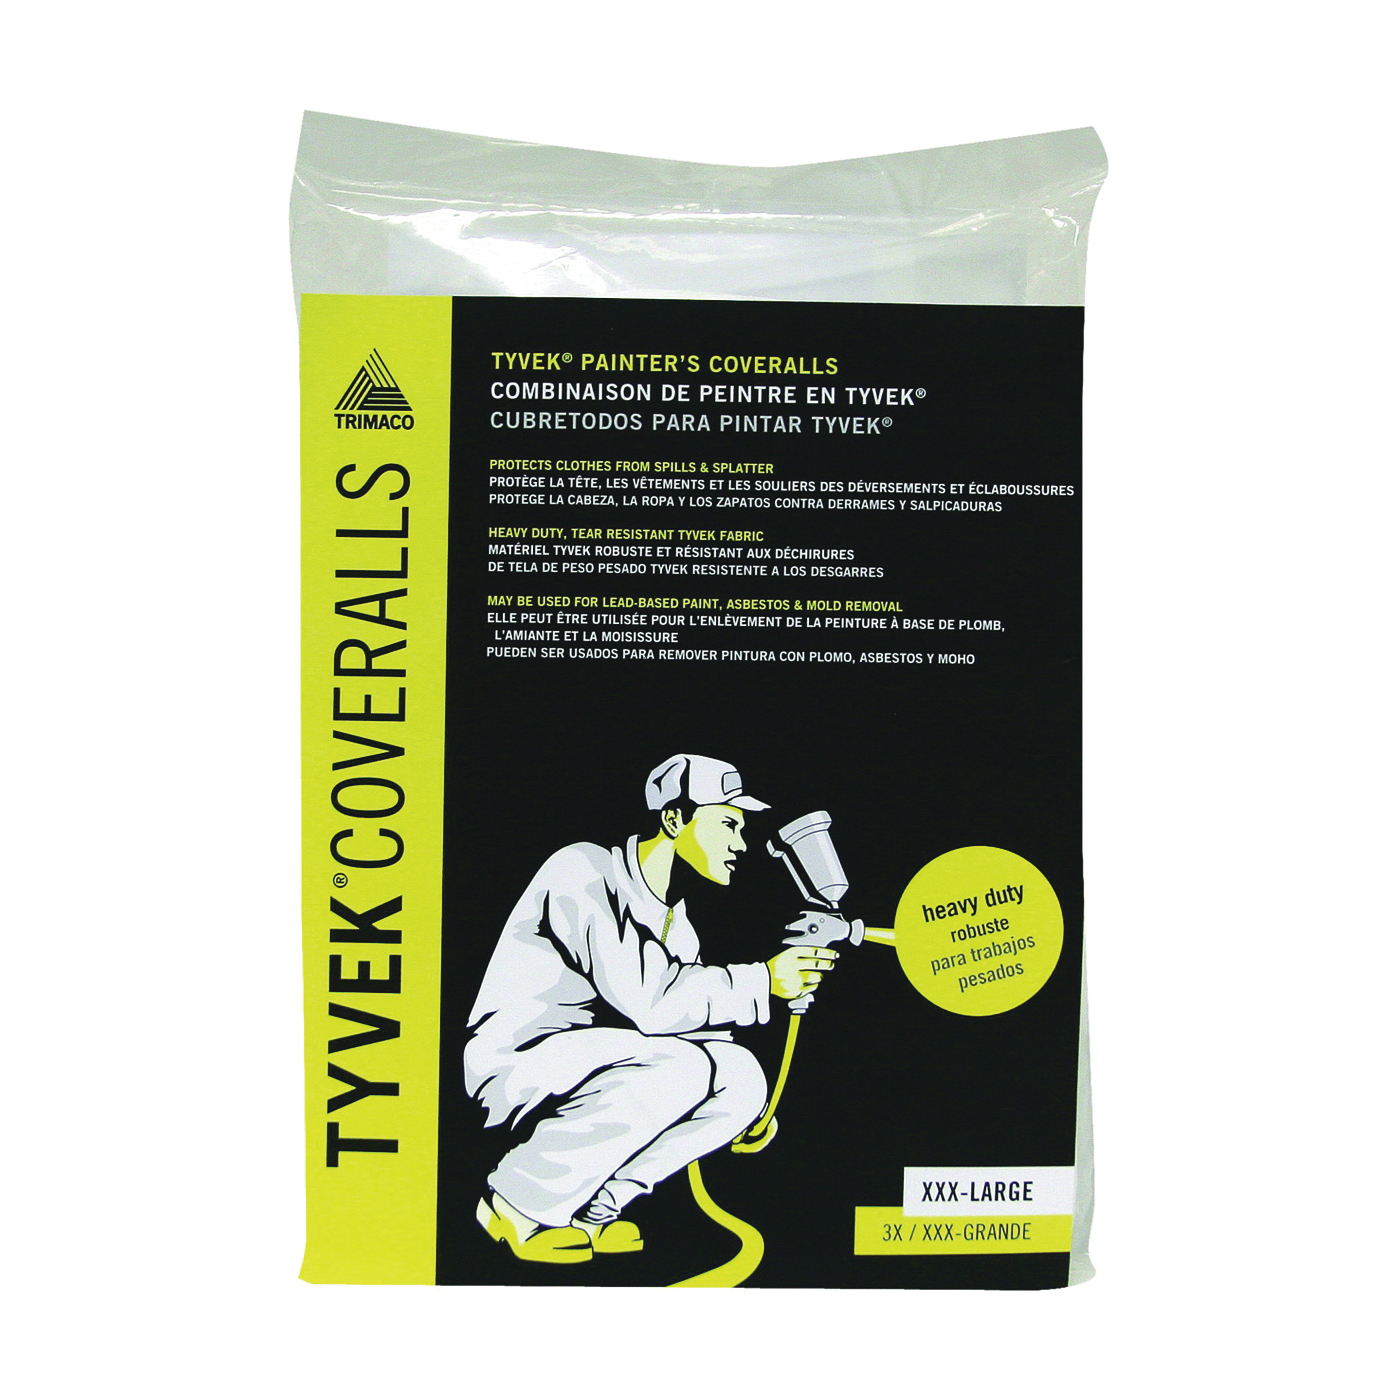 Picture of Trimaco 14125 Professional Painter's Coverall, 3XL, Zipper Closure, Tyvek, White